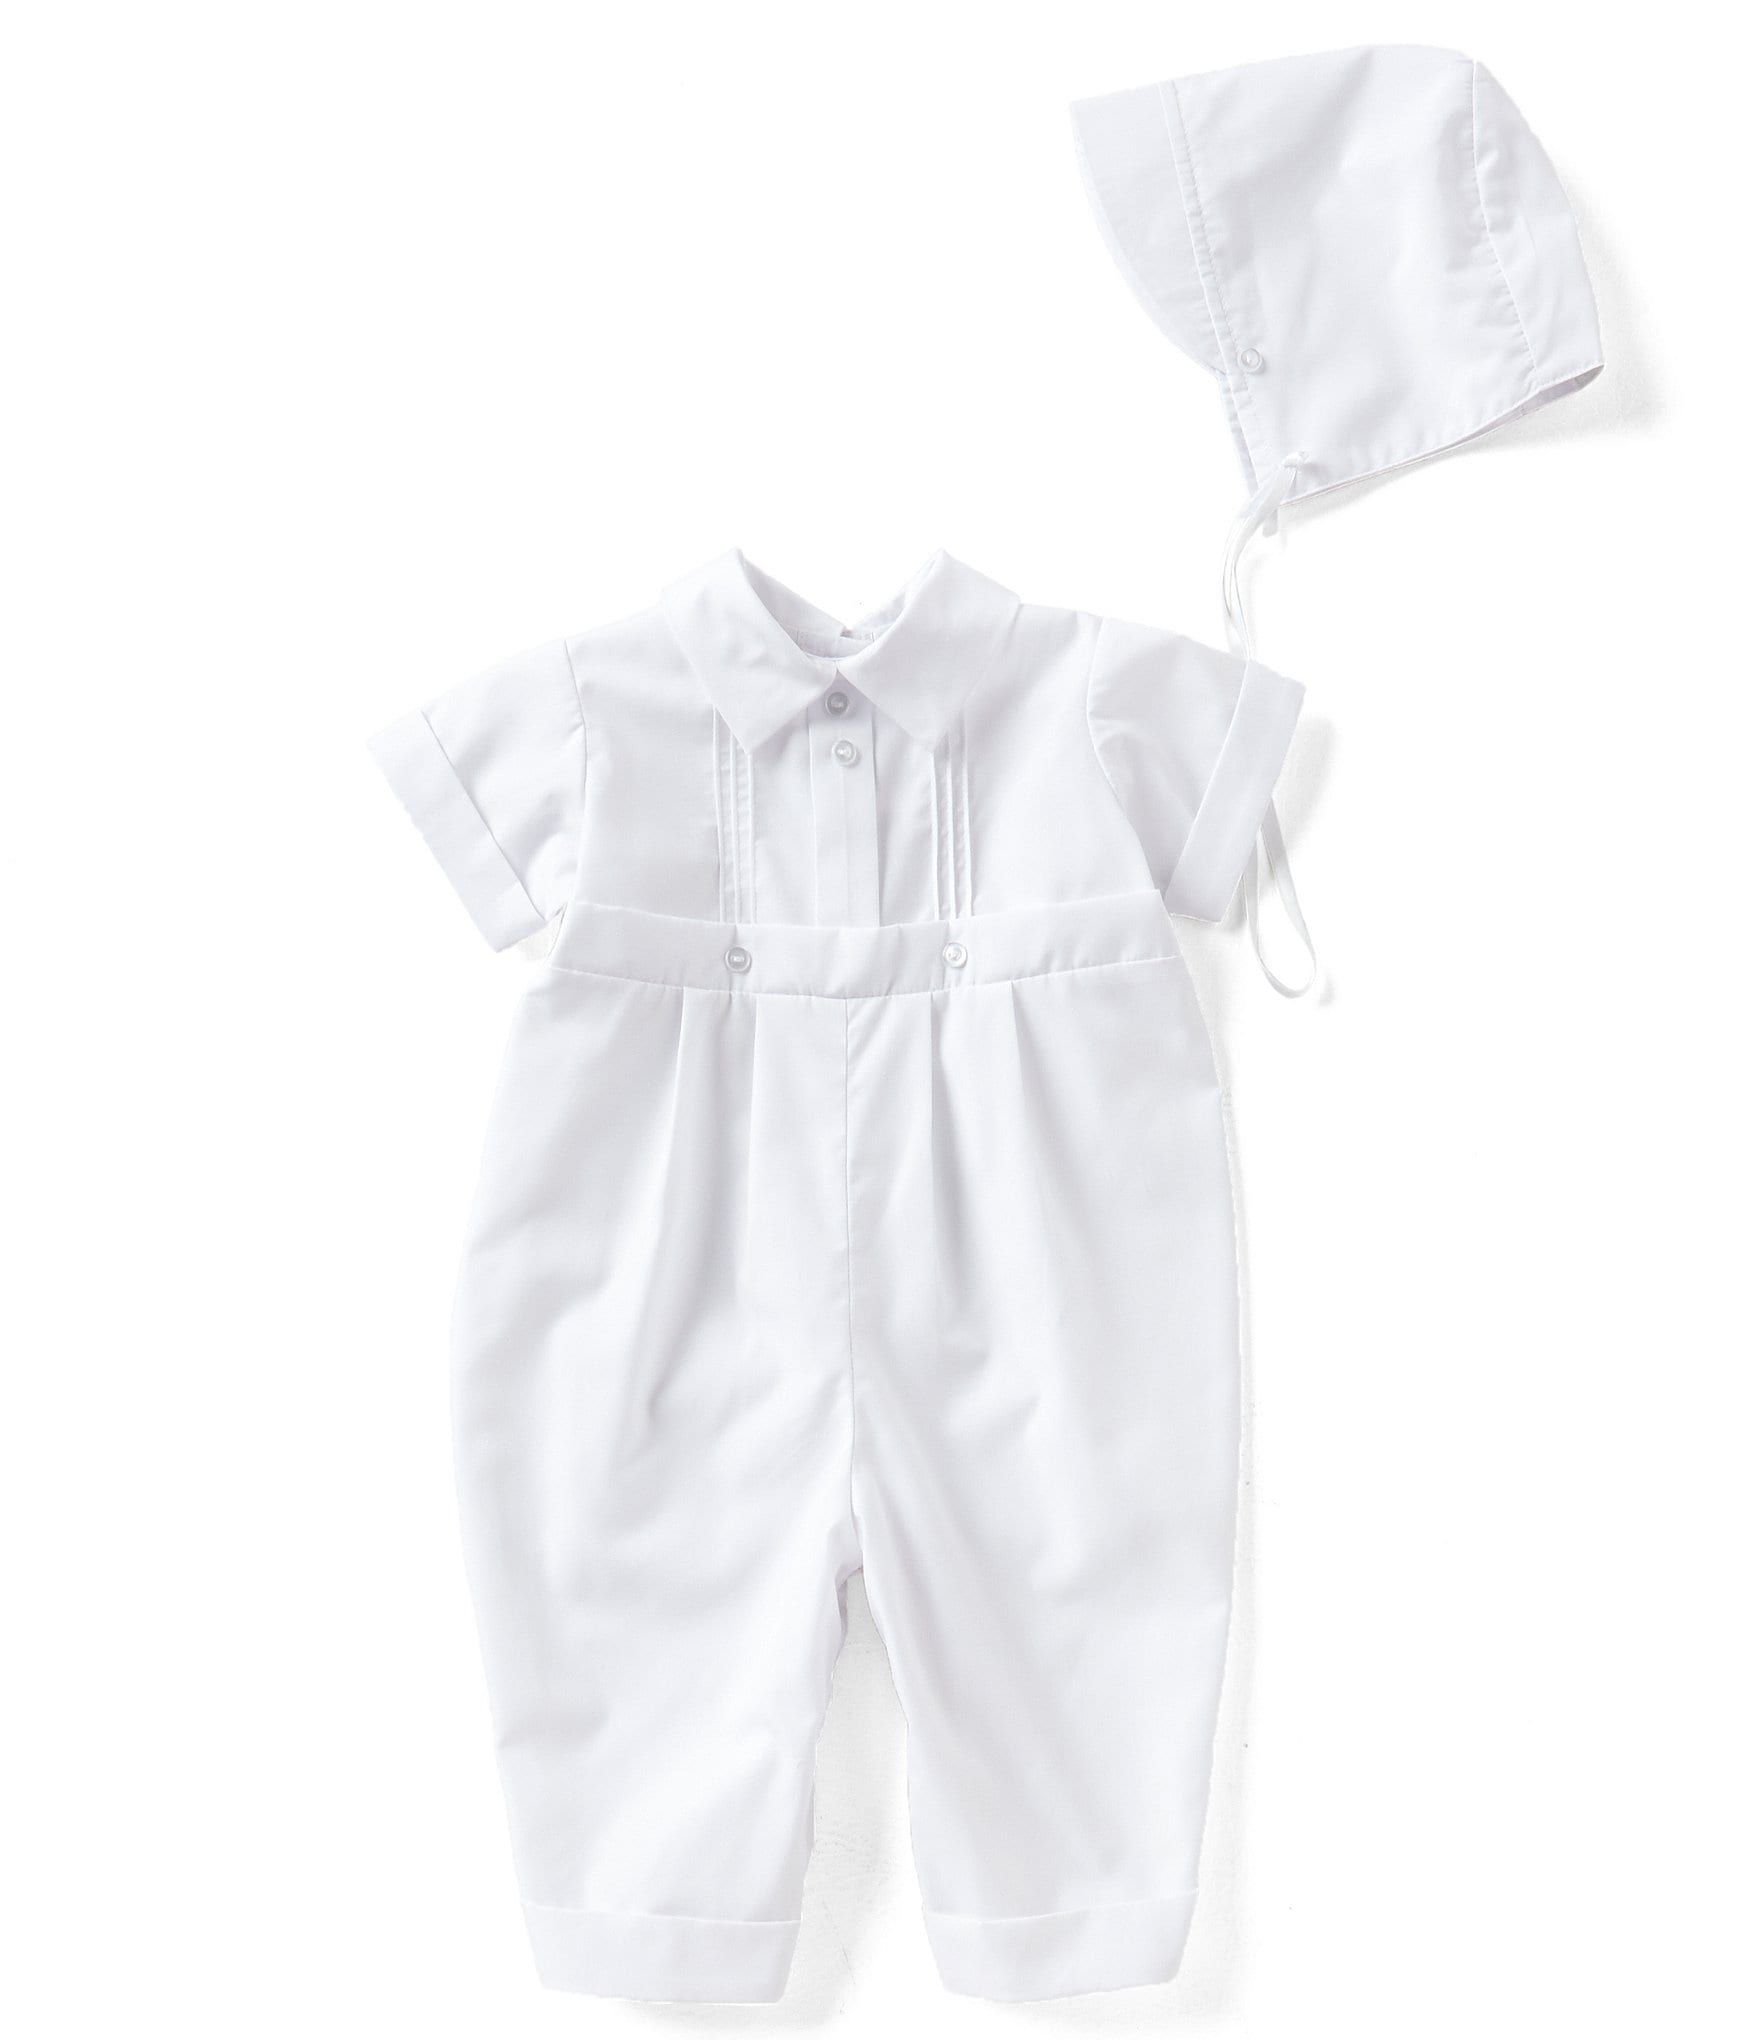 Edgehill Collection Baby Boys Clothing